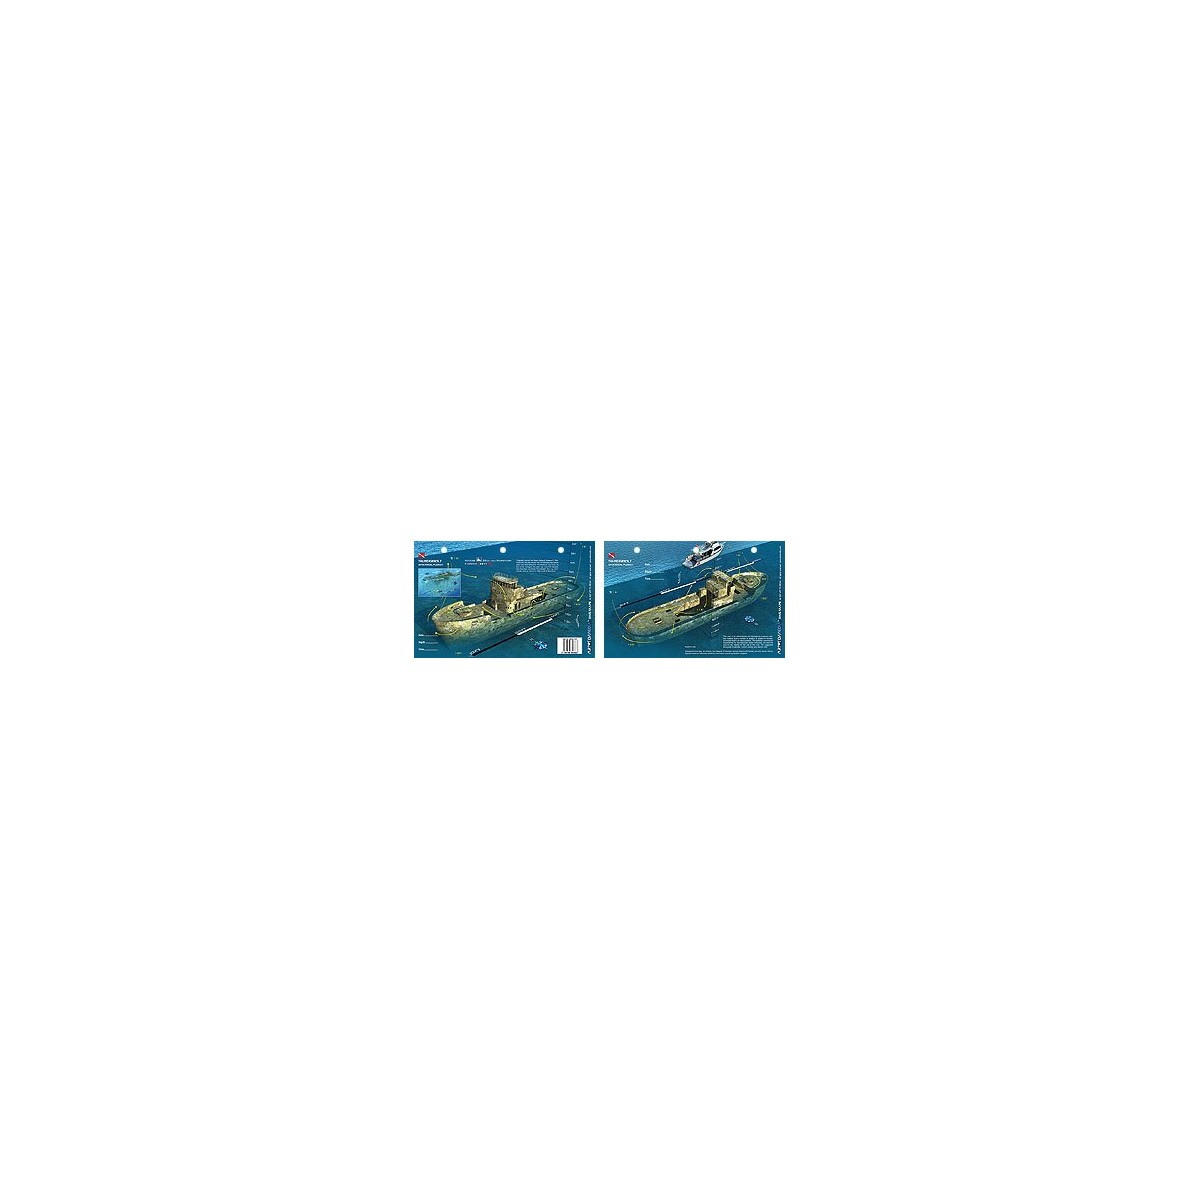 Thunderbolt in Marathon Key, Florida (8.5 x 5.5 Inches) (21.6 x 15cm) - New Art to Media Underwater Waterproof 3D Dive Site Map